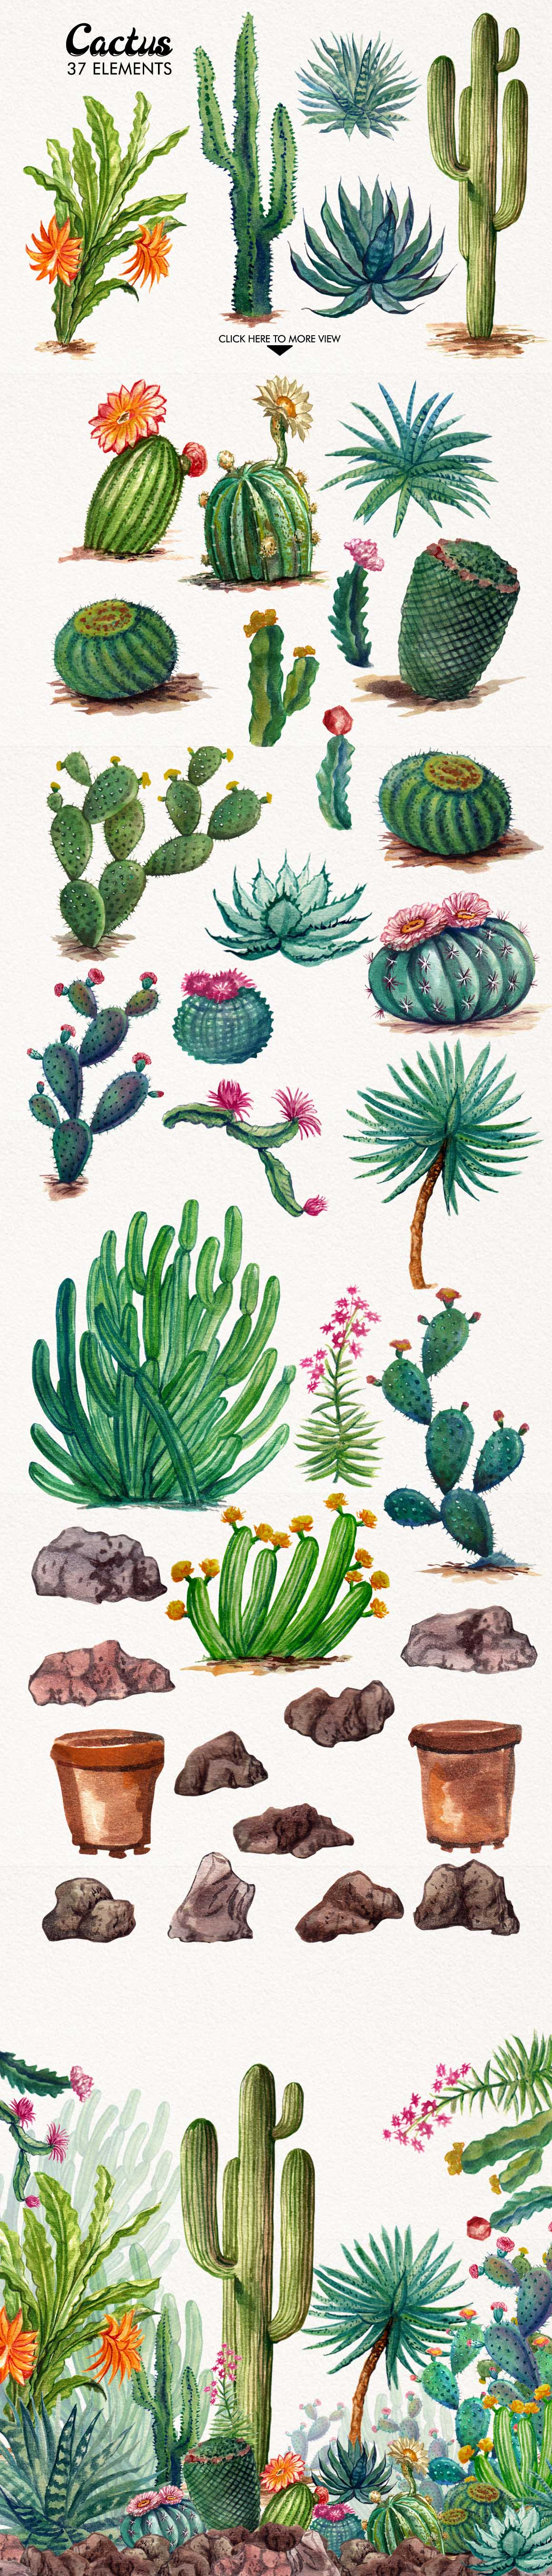 Watercolor Cactuses example image 3